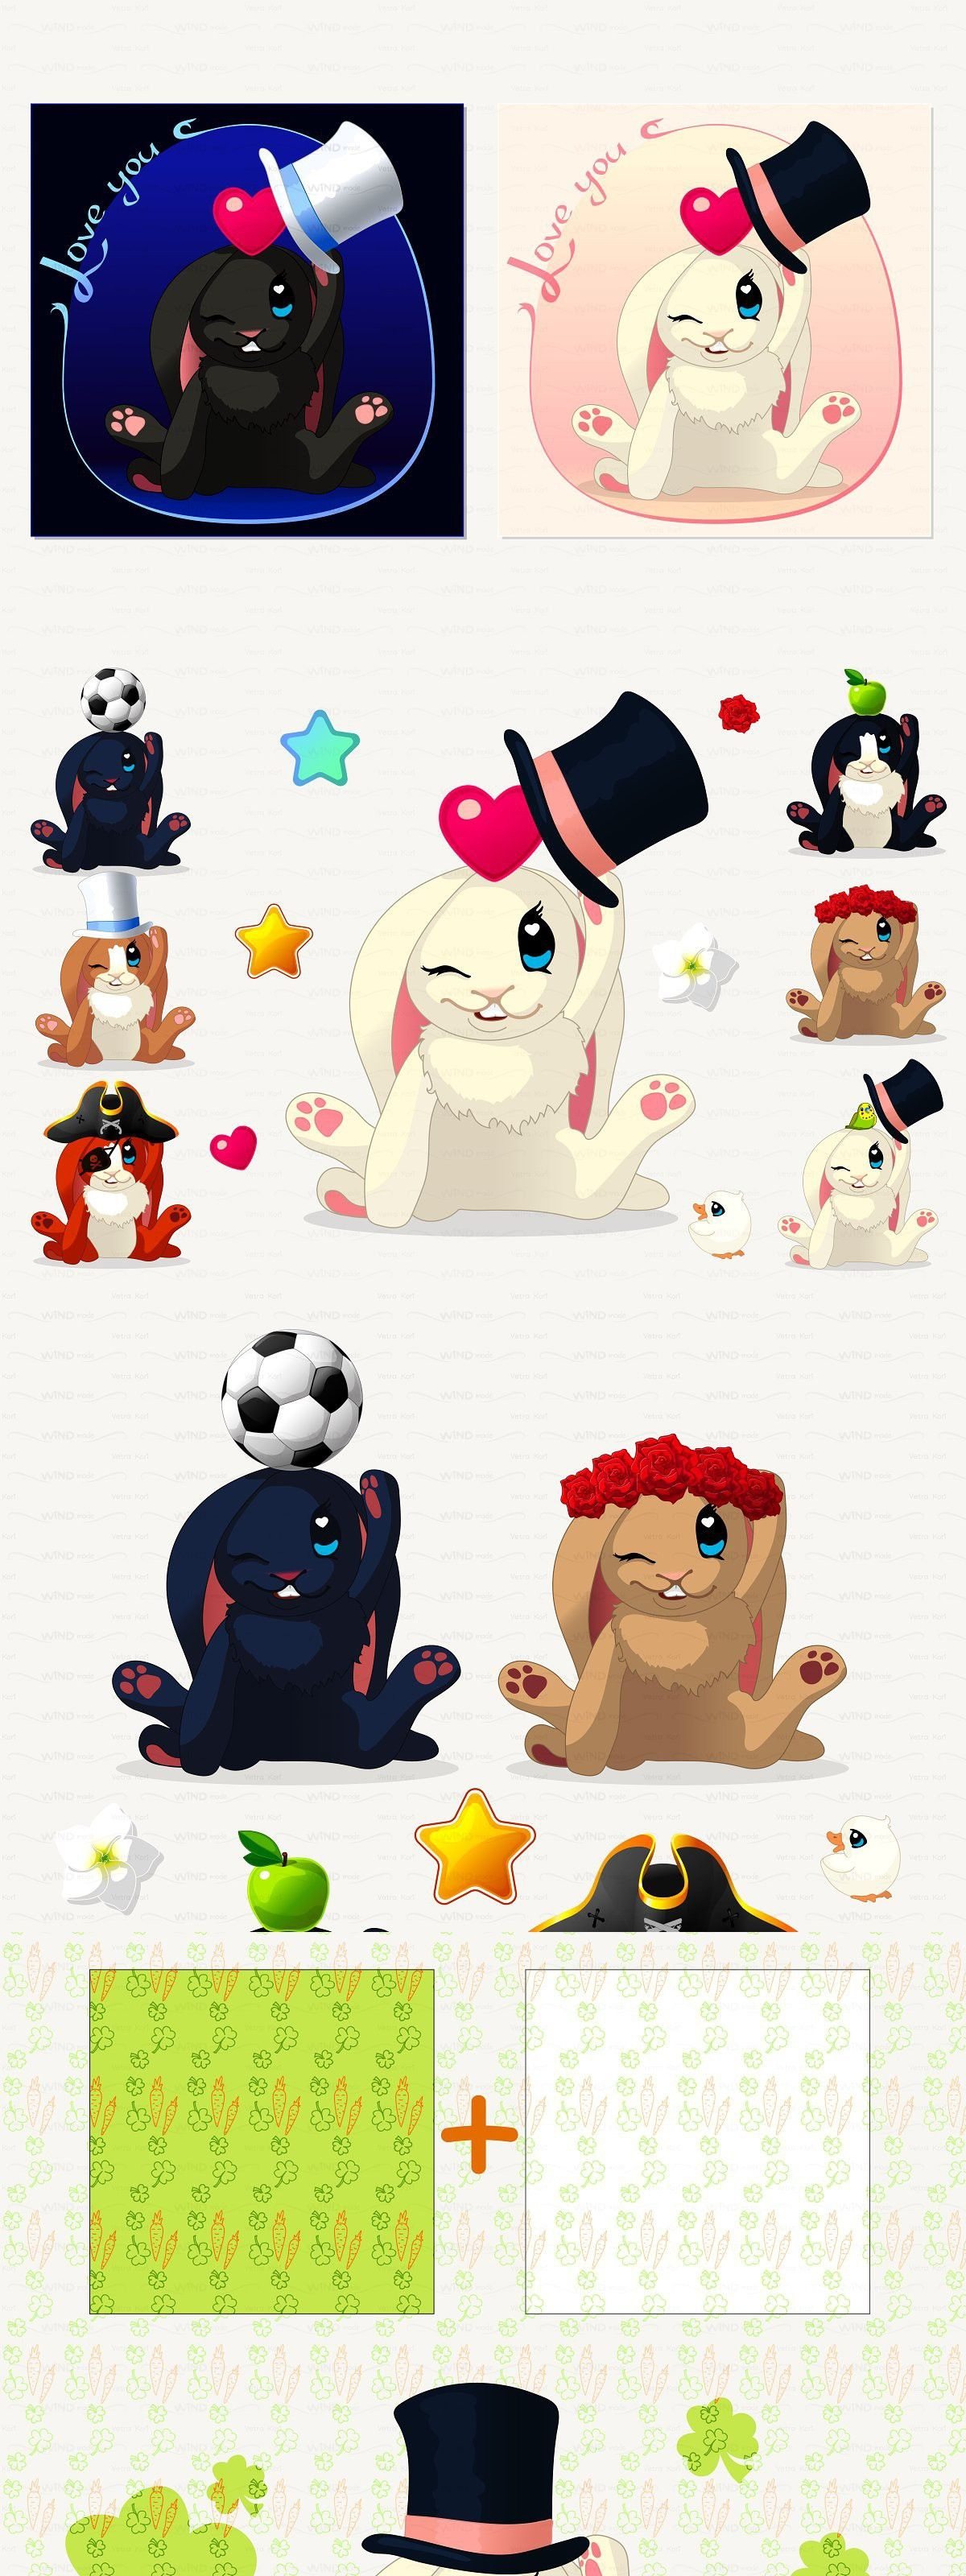 Pin on Easter Icons